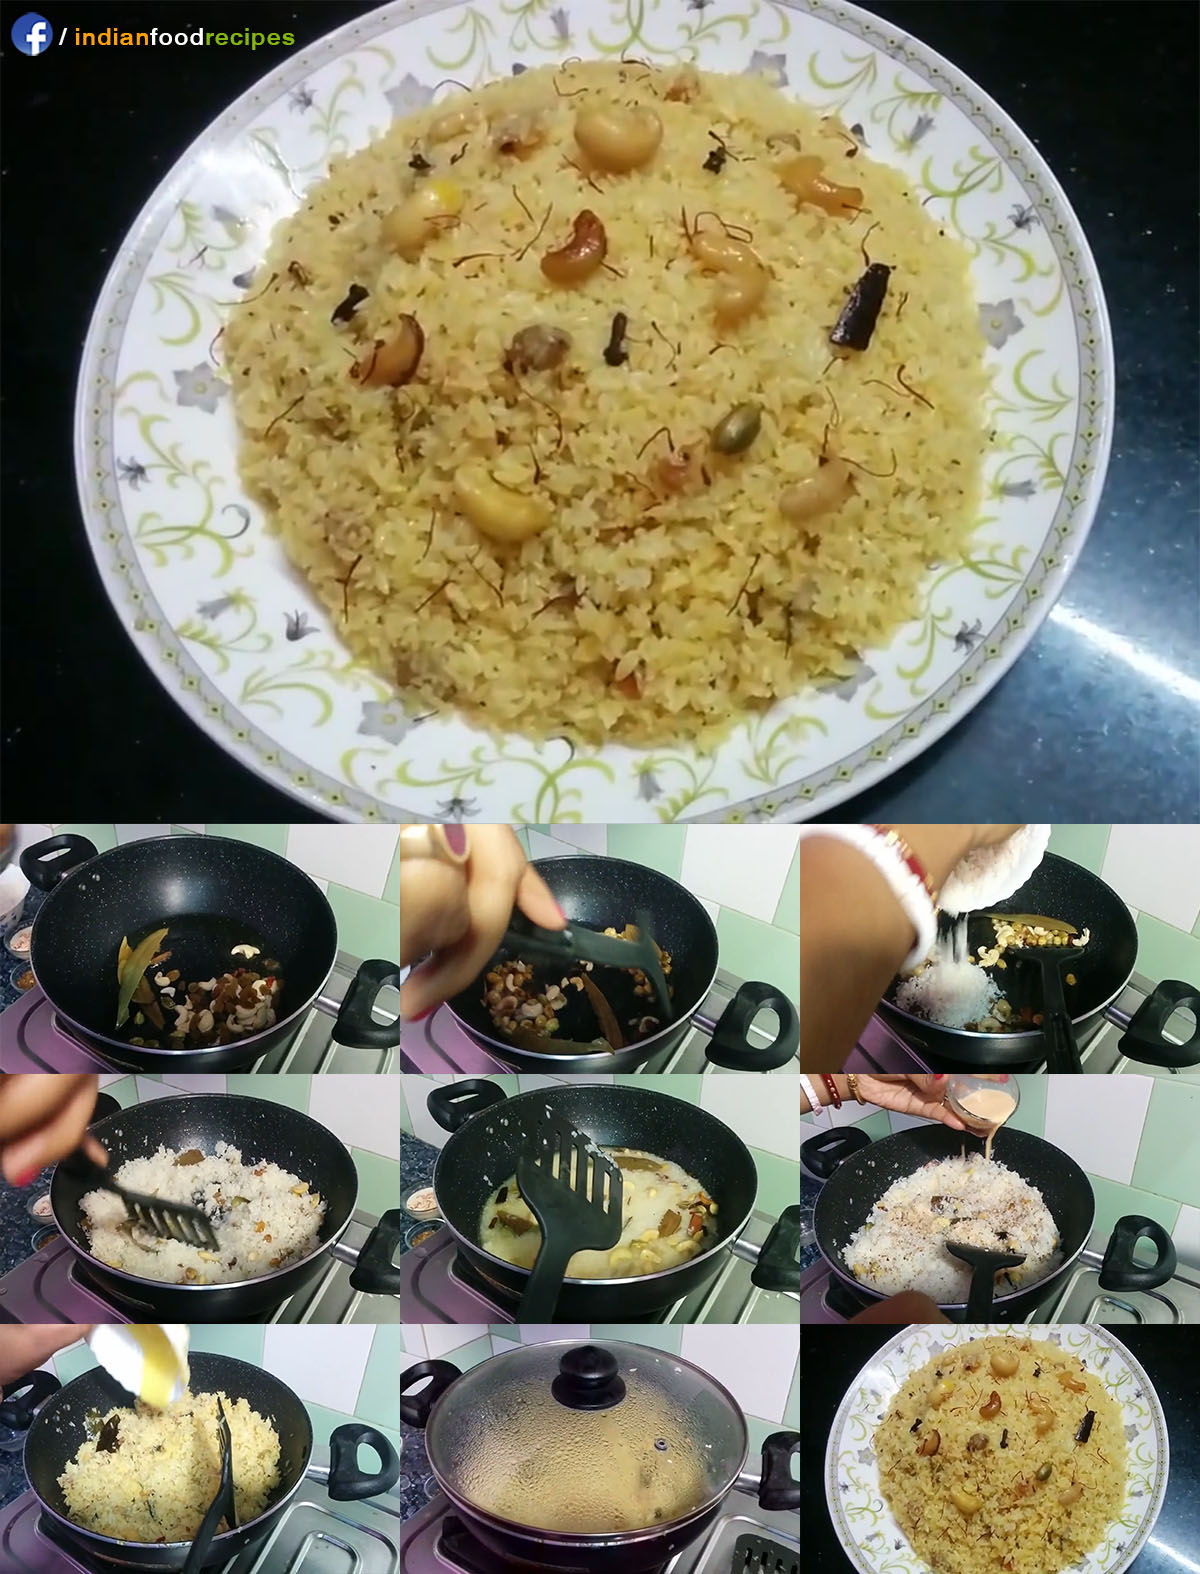 Basanti Pulao / Saffron Flavored Shahi Pulao recipe step by step